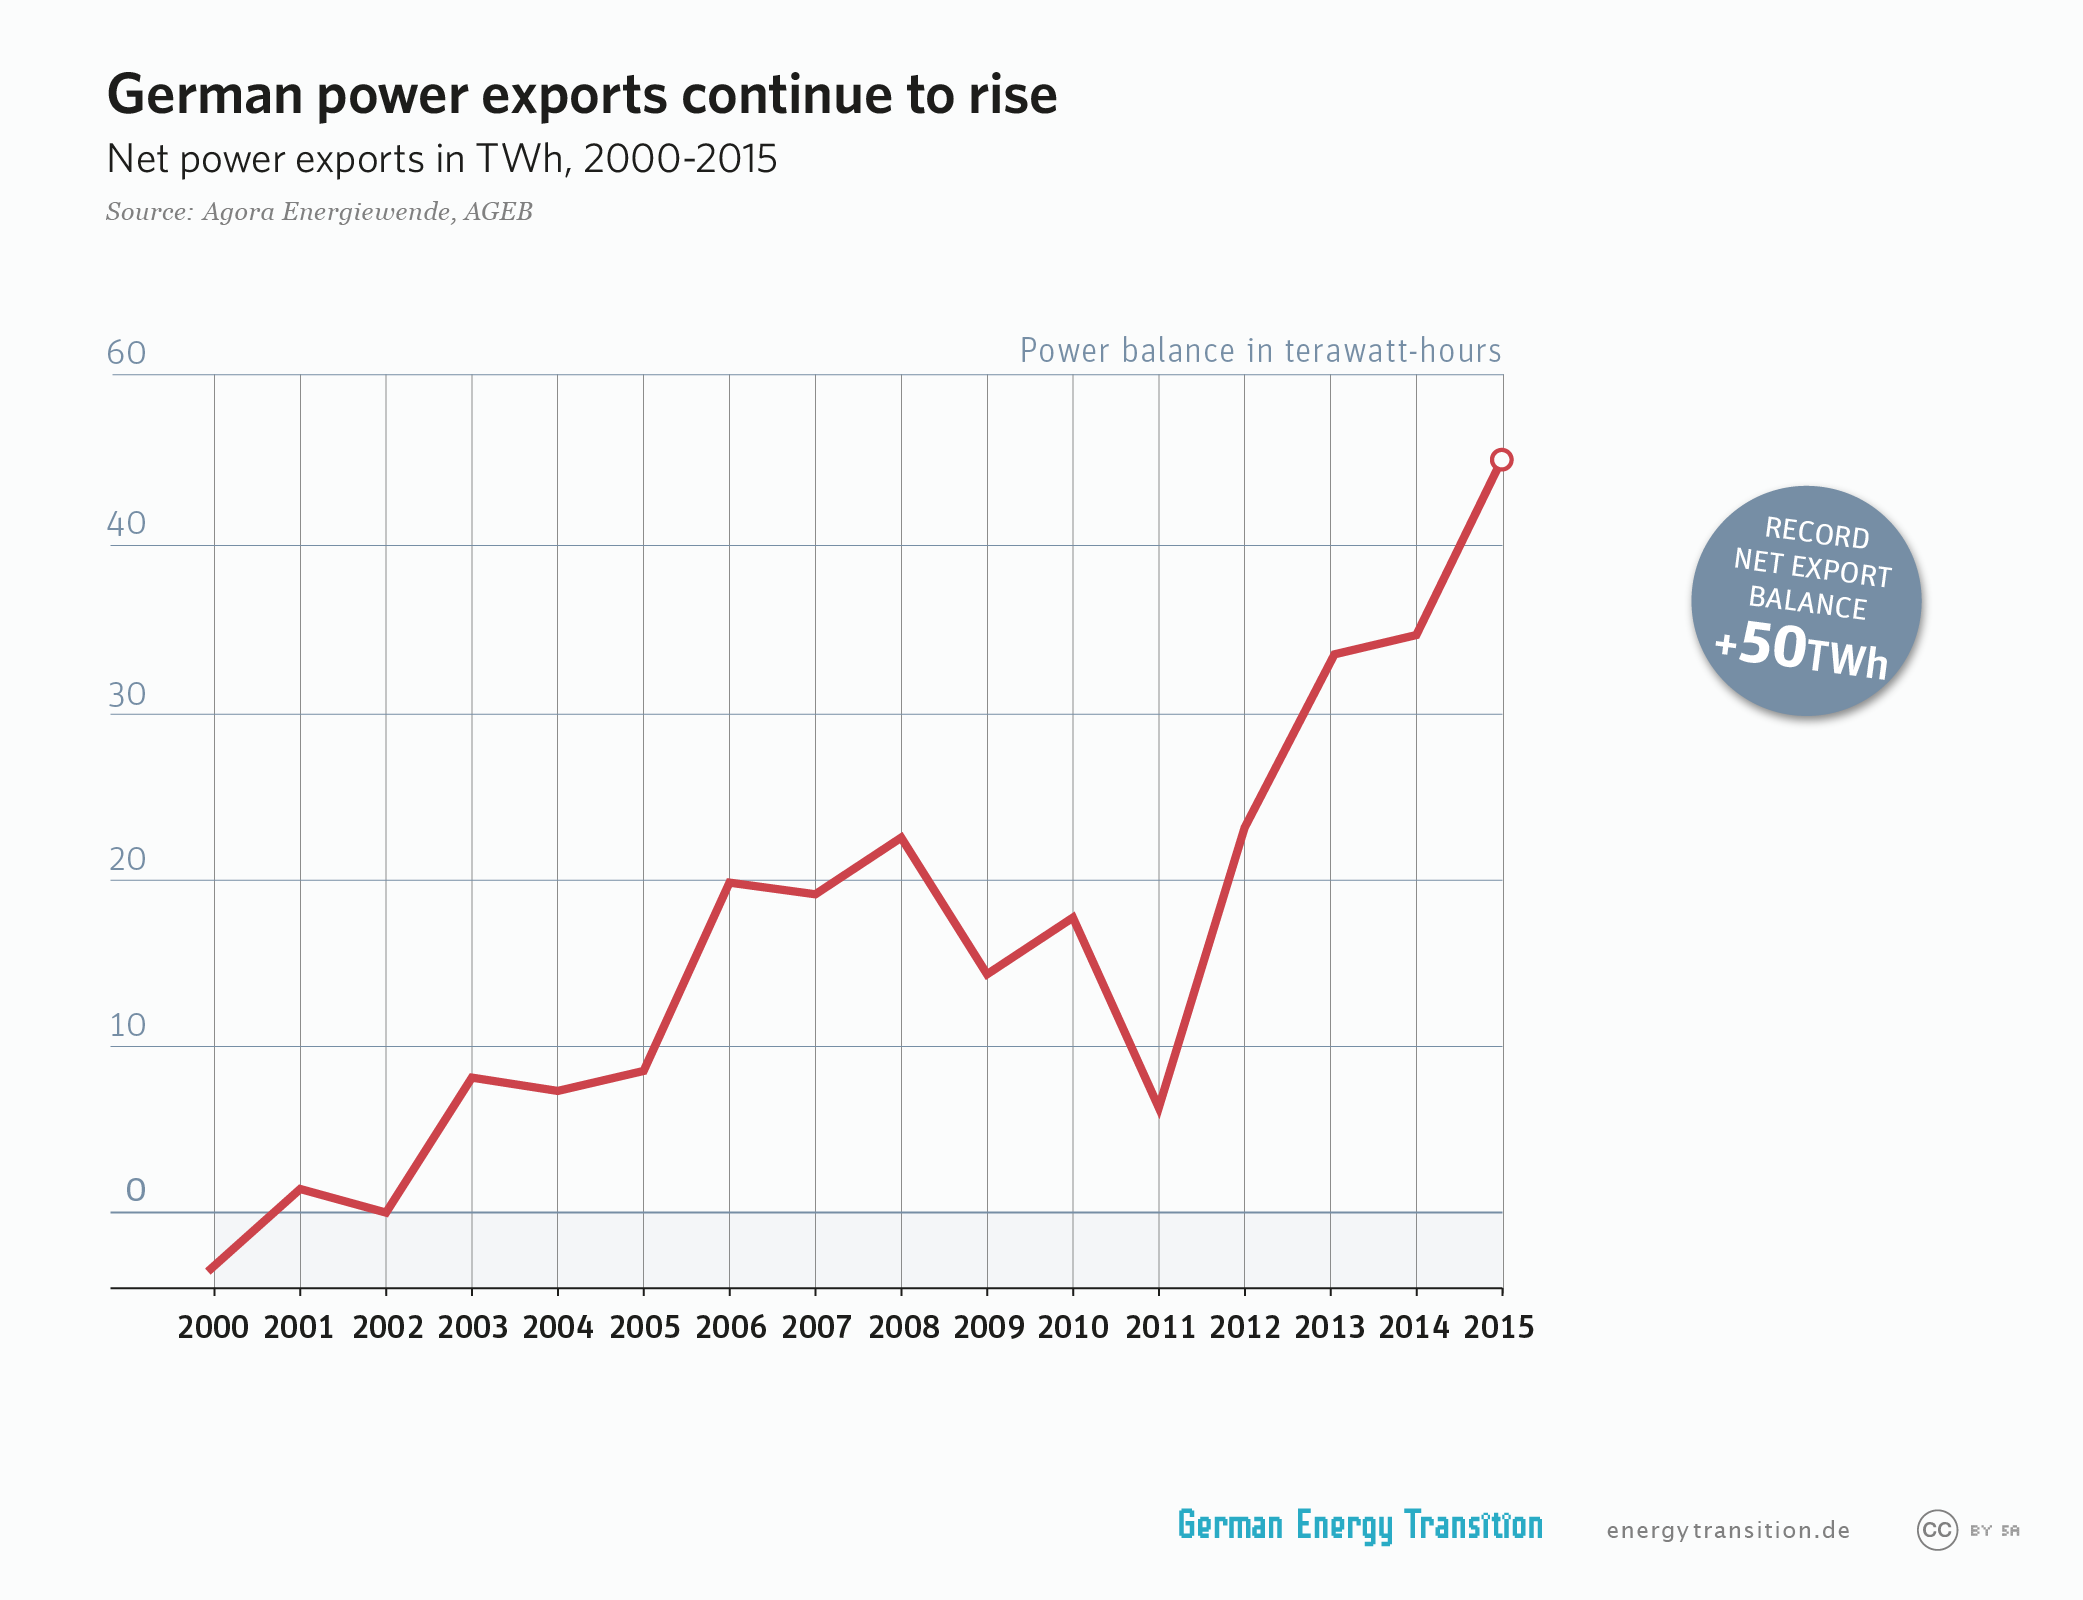 German power exports continue to rise as a result of the energy transition to renewables